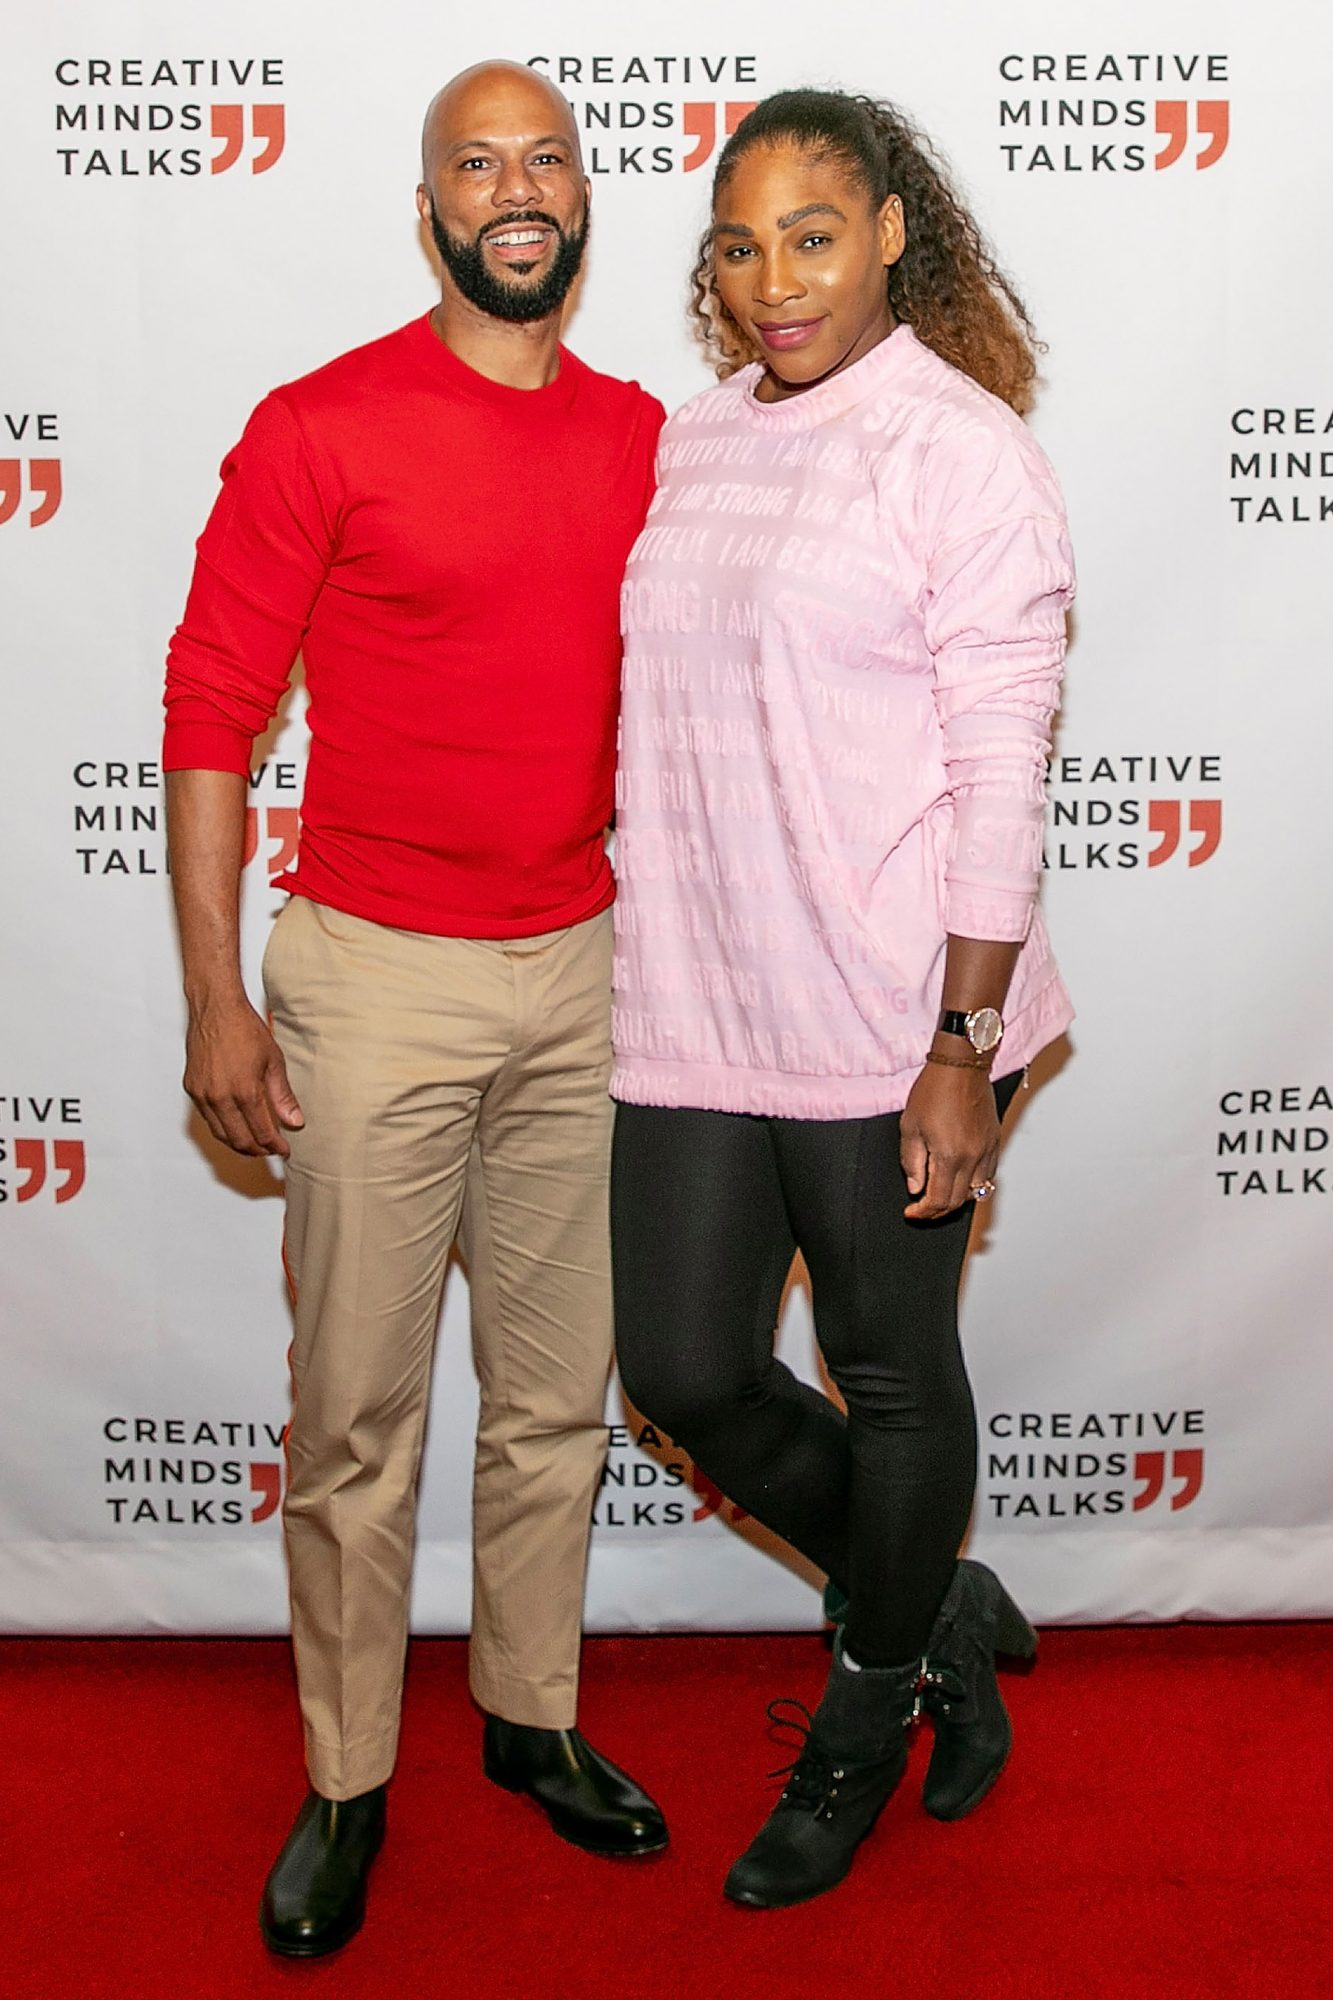 Creative Minds Talks Presents a Conversation Between Athlete, Entrepreneur, And Philanthropist, Serena Williams And Award-Winning Artist, Actor, And Activist COMMON